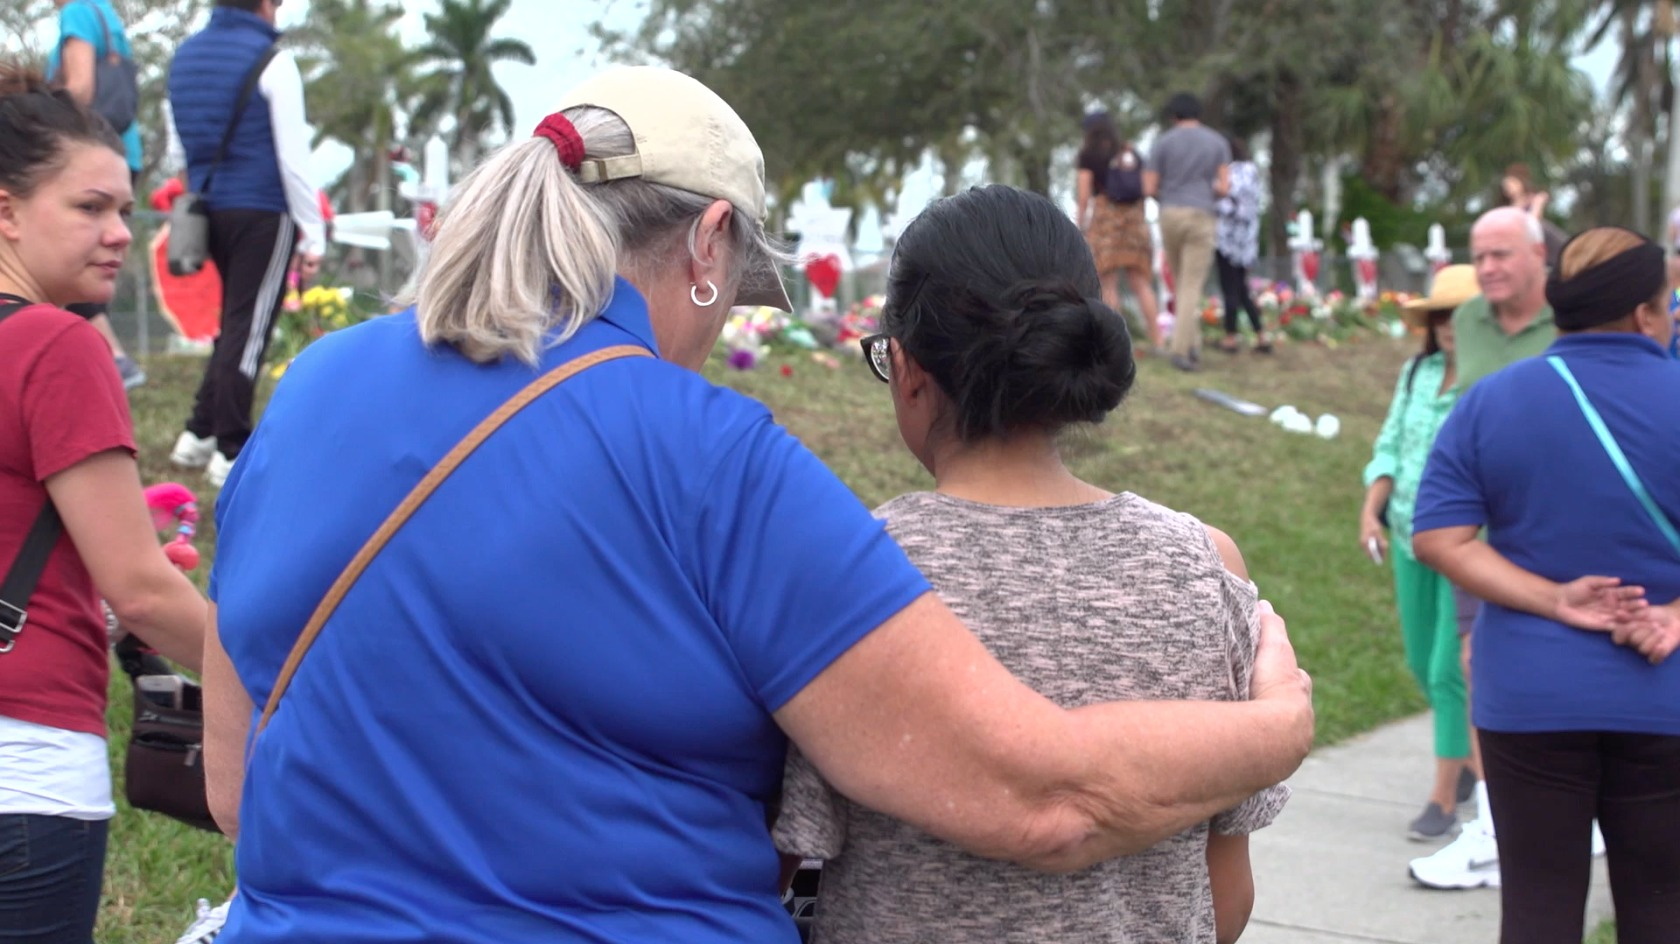 Chaplains Offer Comfort To Community Of Parkland Florida